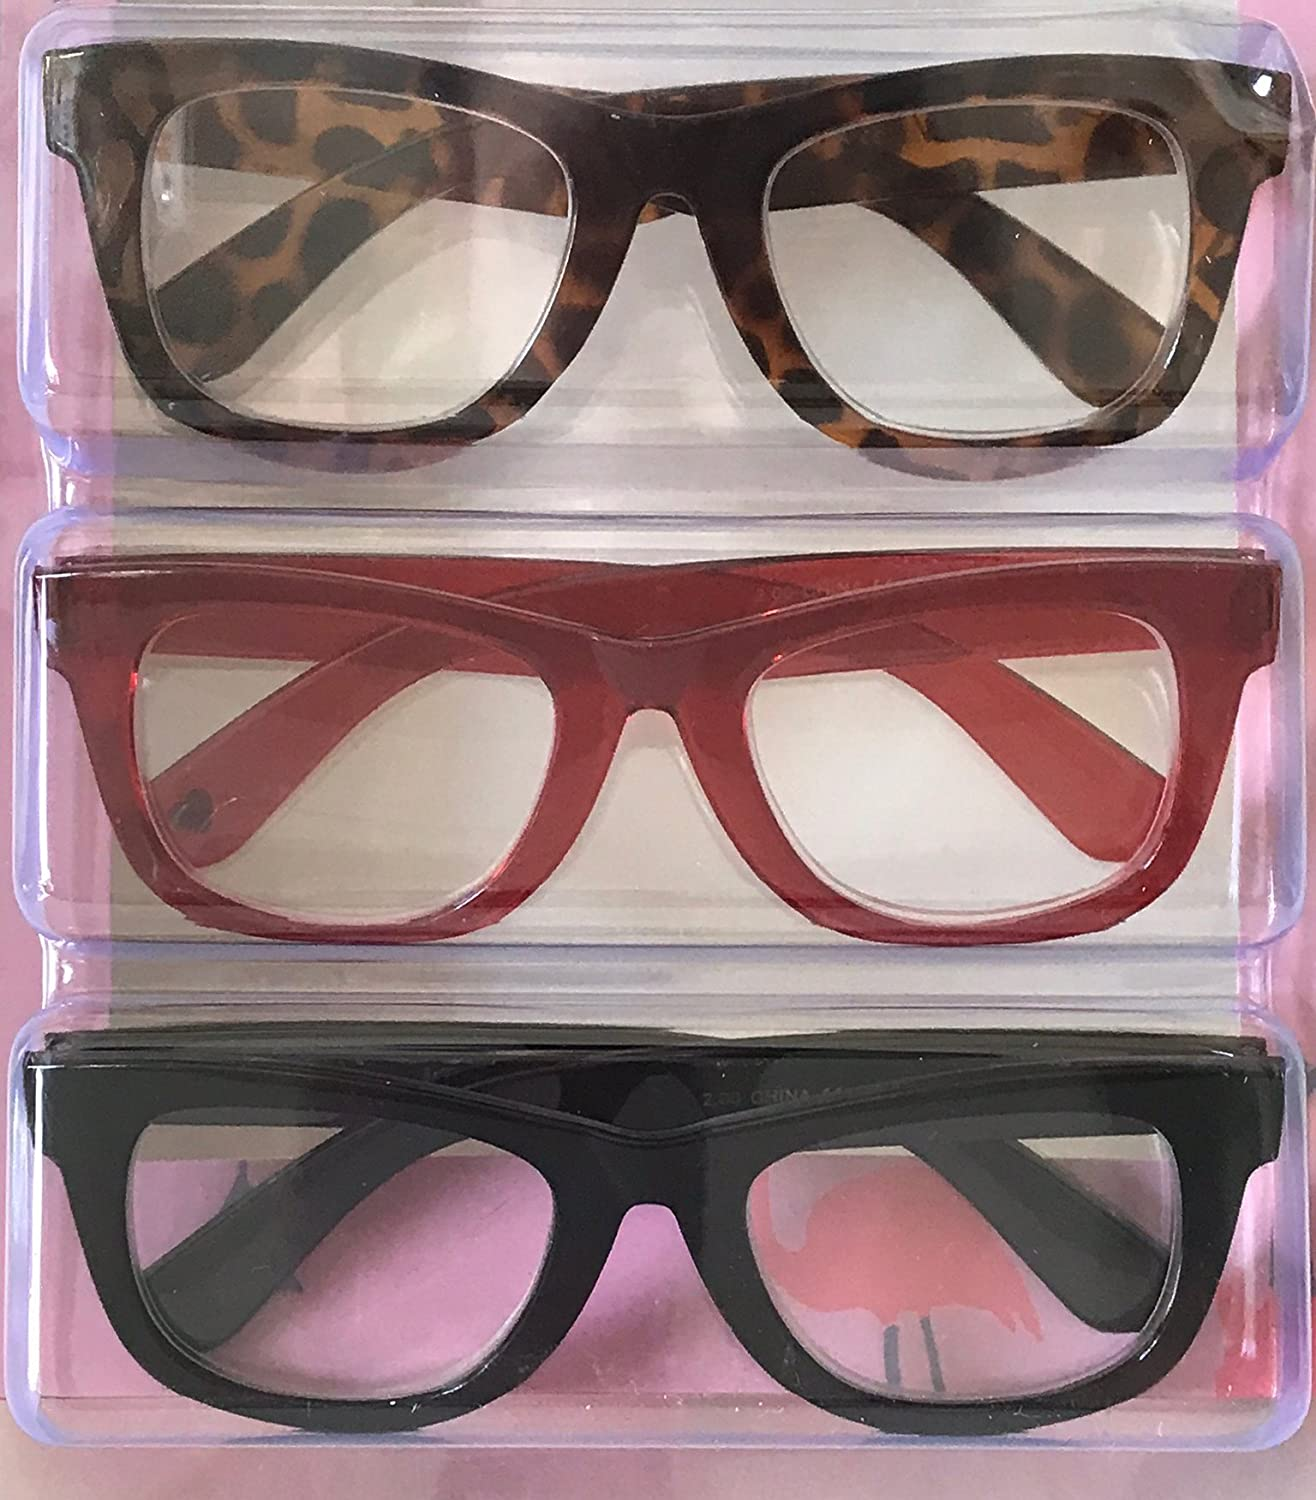 99b7e7eb7e Amazon.com  Betsey Johnson Red Animal Print Reading Glasses 3 Pack Readers  (+1.50 Strength)  Health   Personal Care